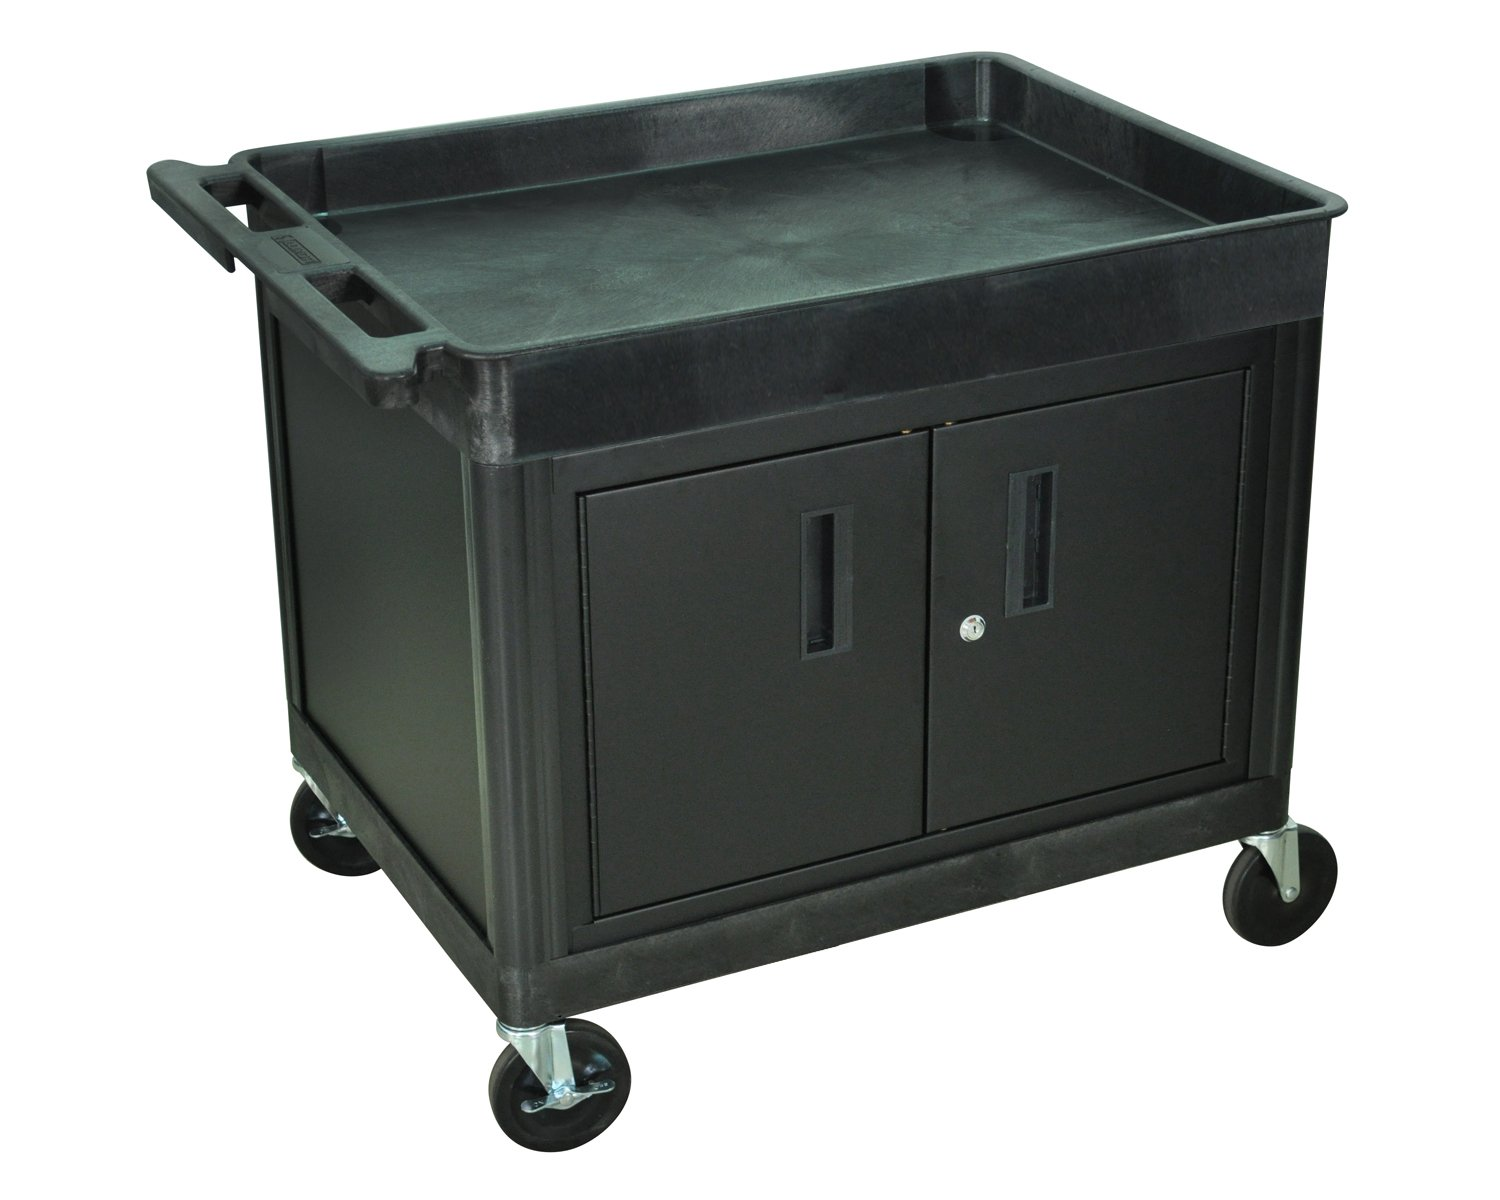 Amazon.com: Luxor Tub Top Shelf Multipurpose Rolling Utility Cart ...